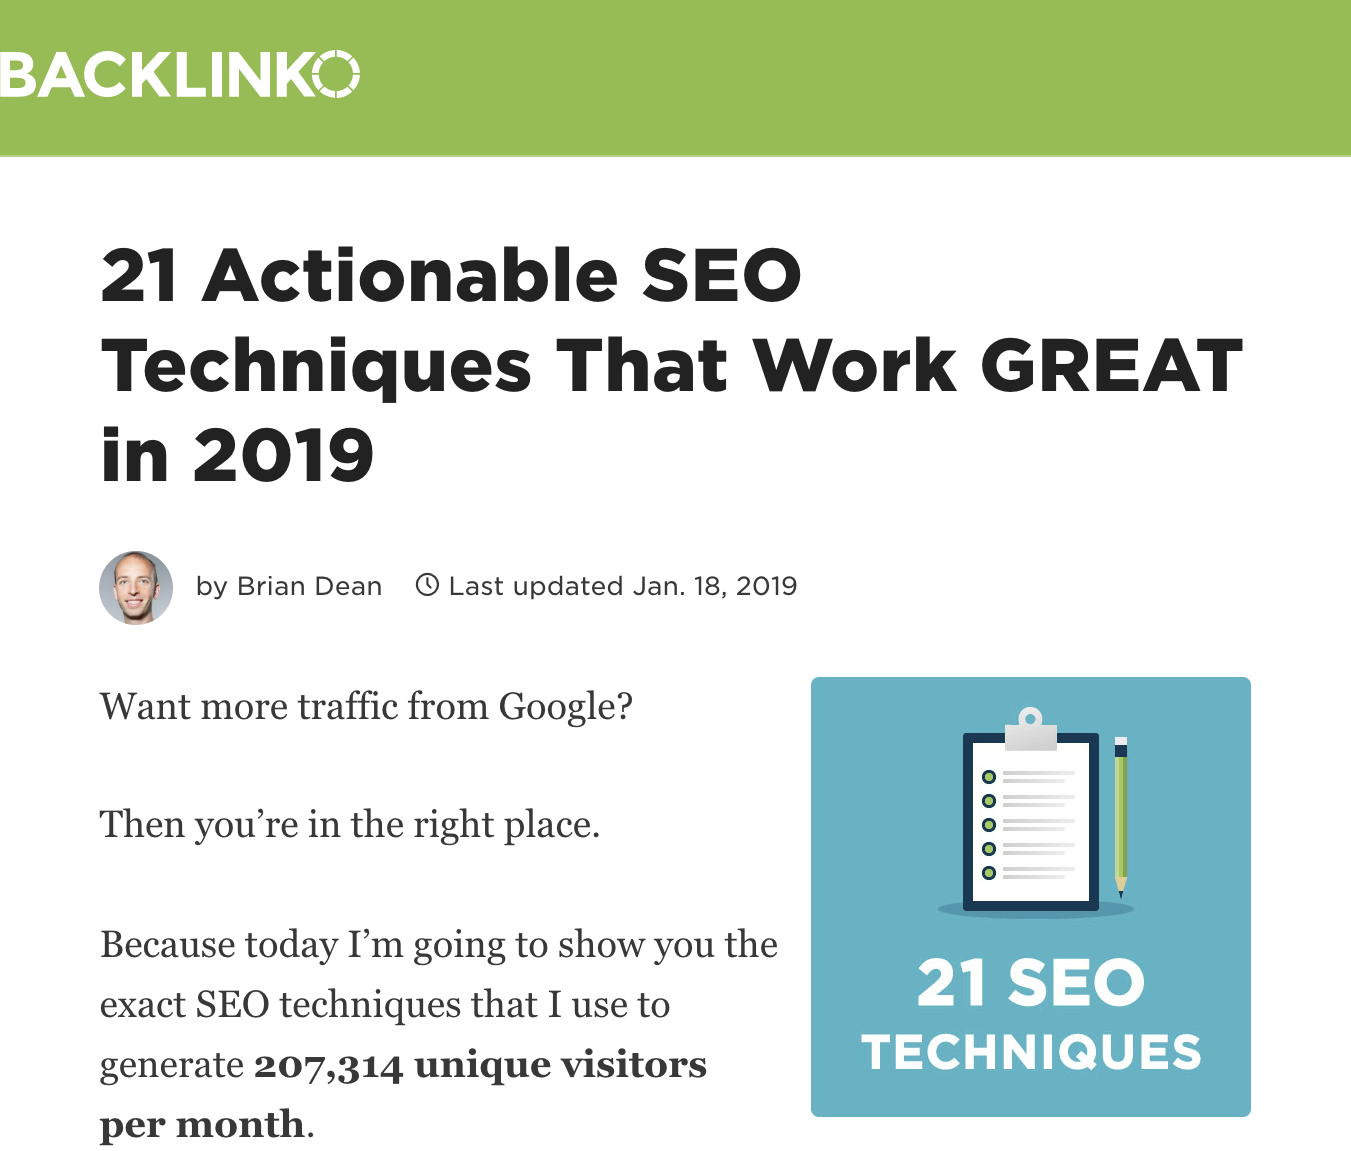 Long Form SEO - 21 Actionable SEO Techniques that work great in 2019